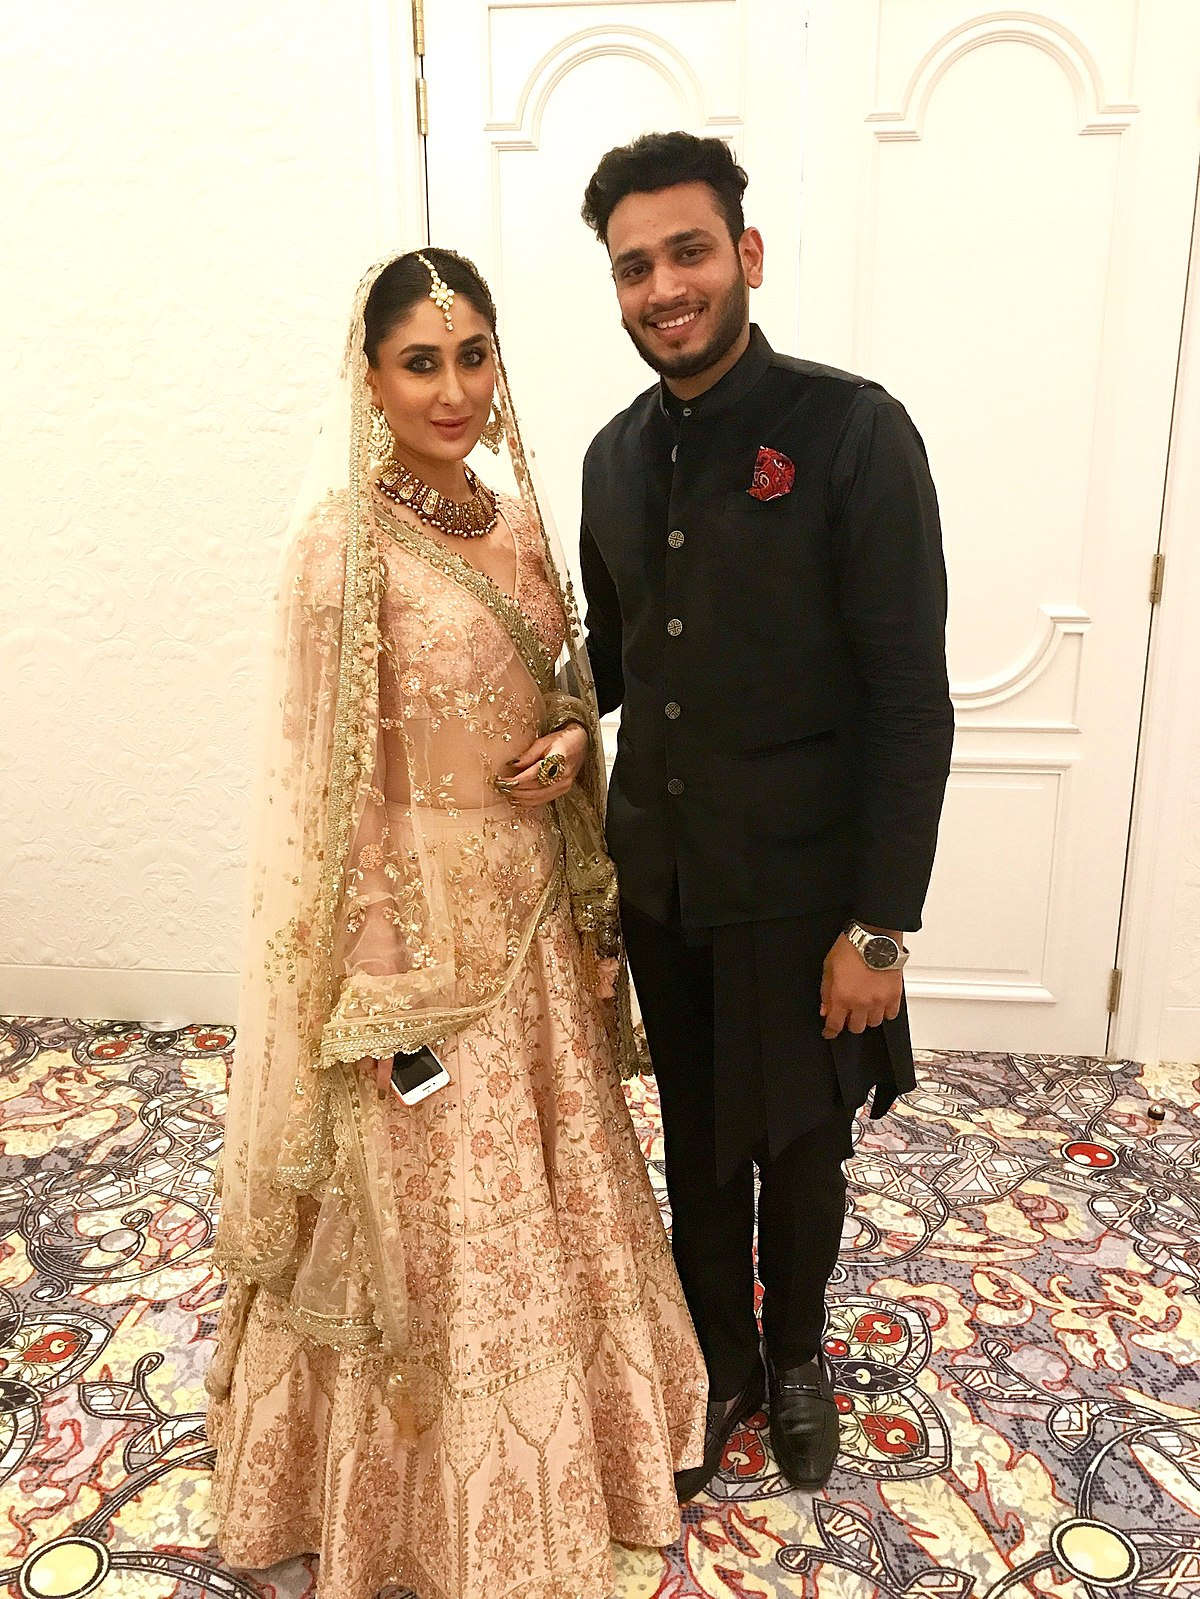 File Lokesh Sharma With Bollywood Actress Kareena Kapoor Khan Shop Qatar Festival Jpg Wikimedia Commons